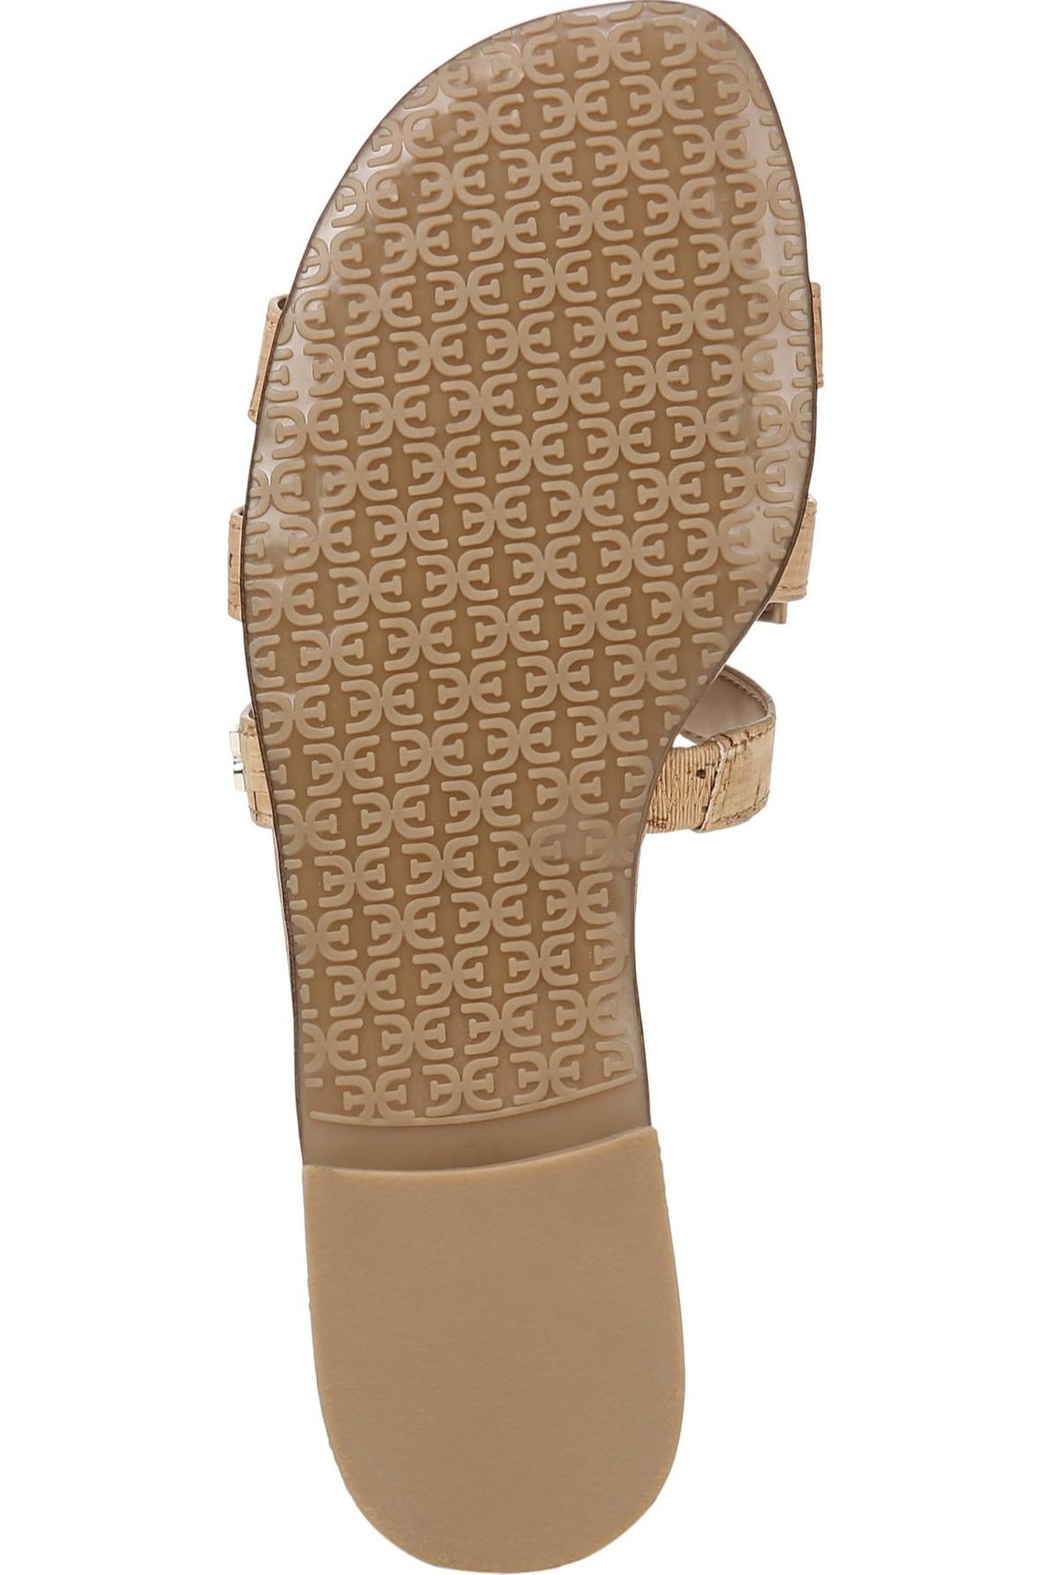 Sam Edelman Bay Cutout Slide - Back Cropped Image